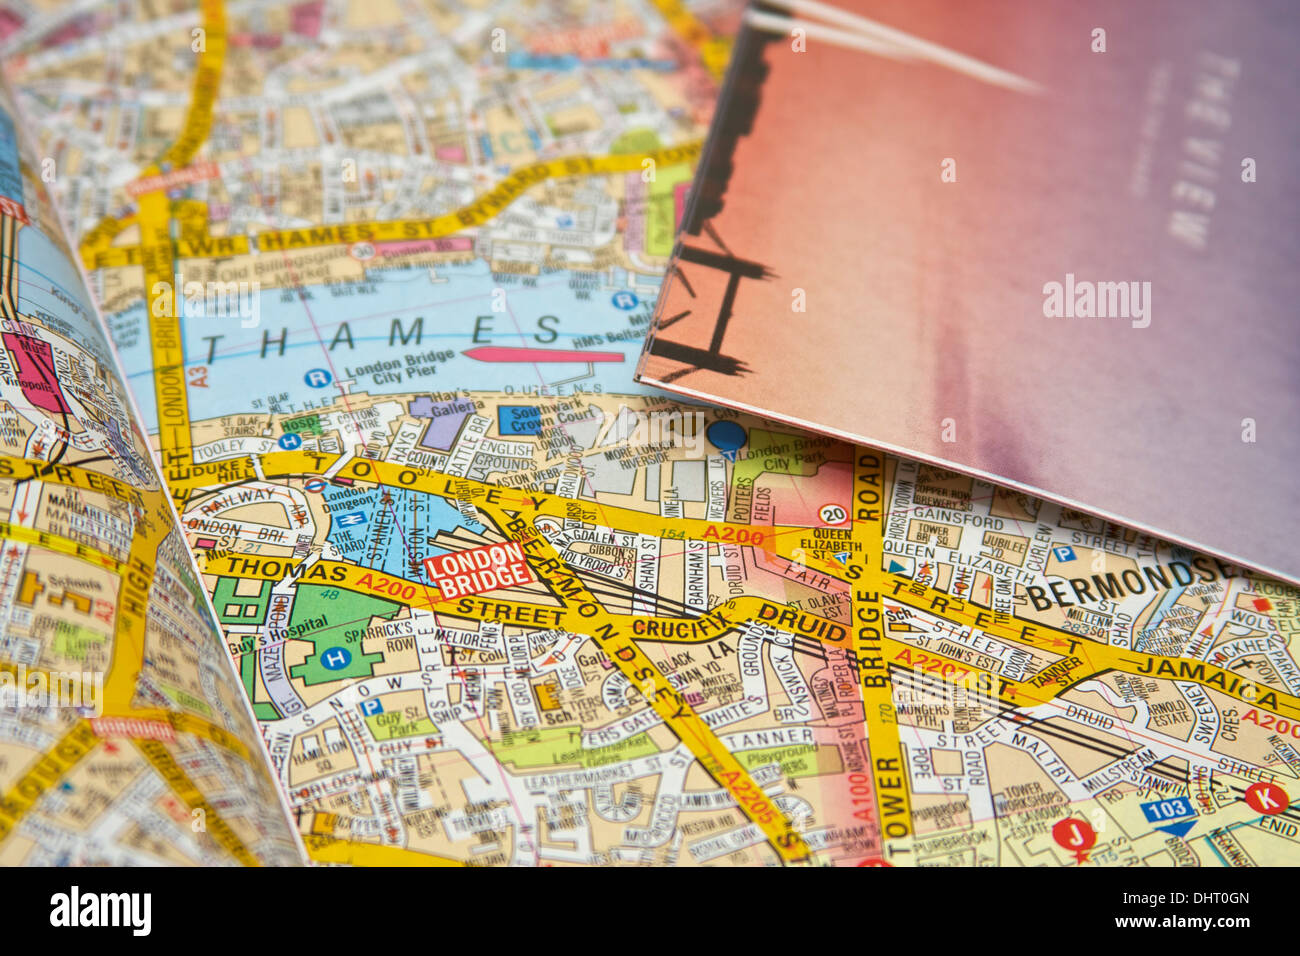 london street map with focus on location of the shard and entry tickets